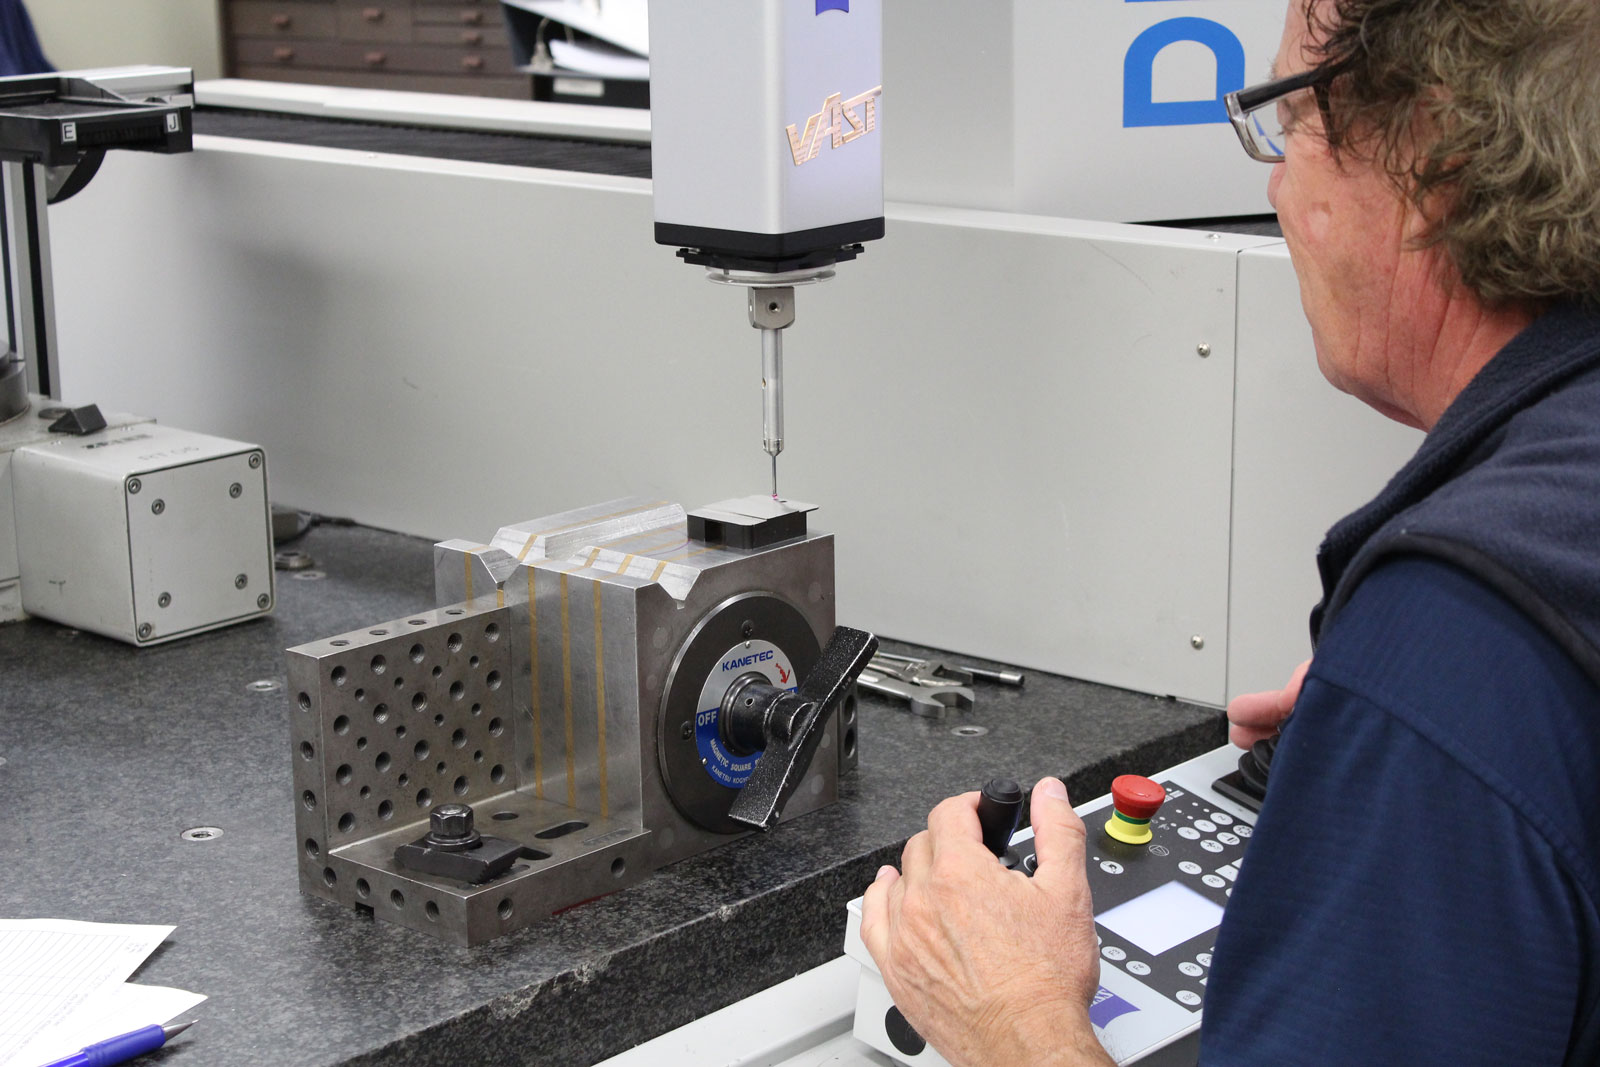 Inspection engineer using Zeiss inspection machine